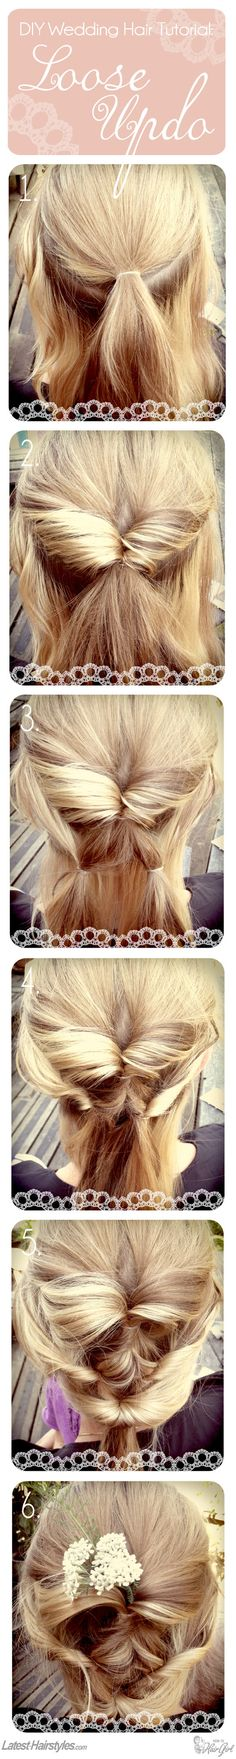 A Beautifully Loose Updo. I so hope my hair is long enough for this!